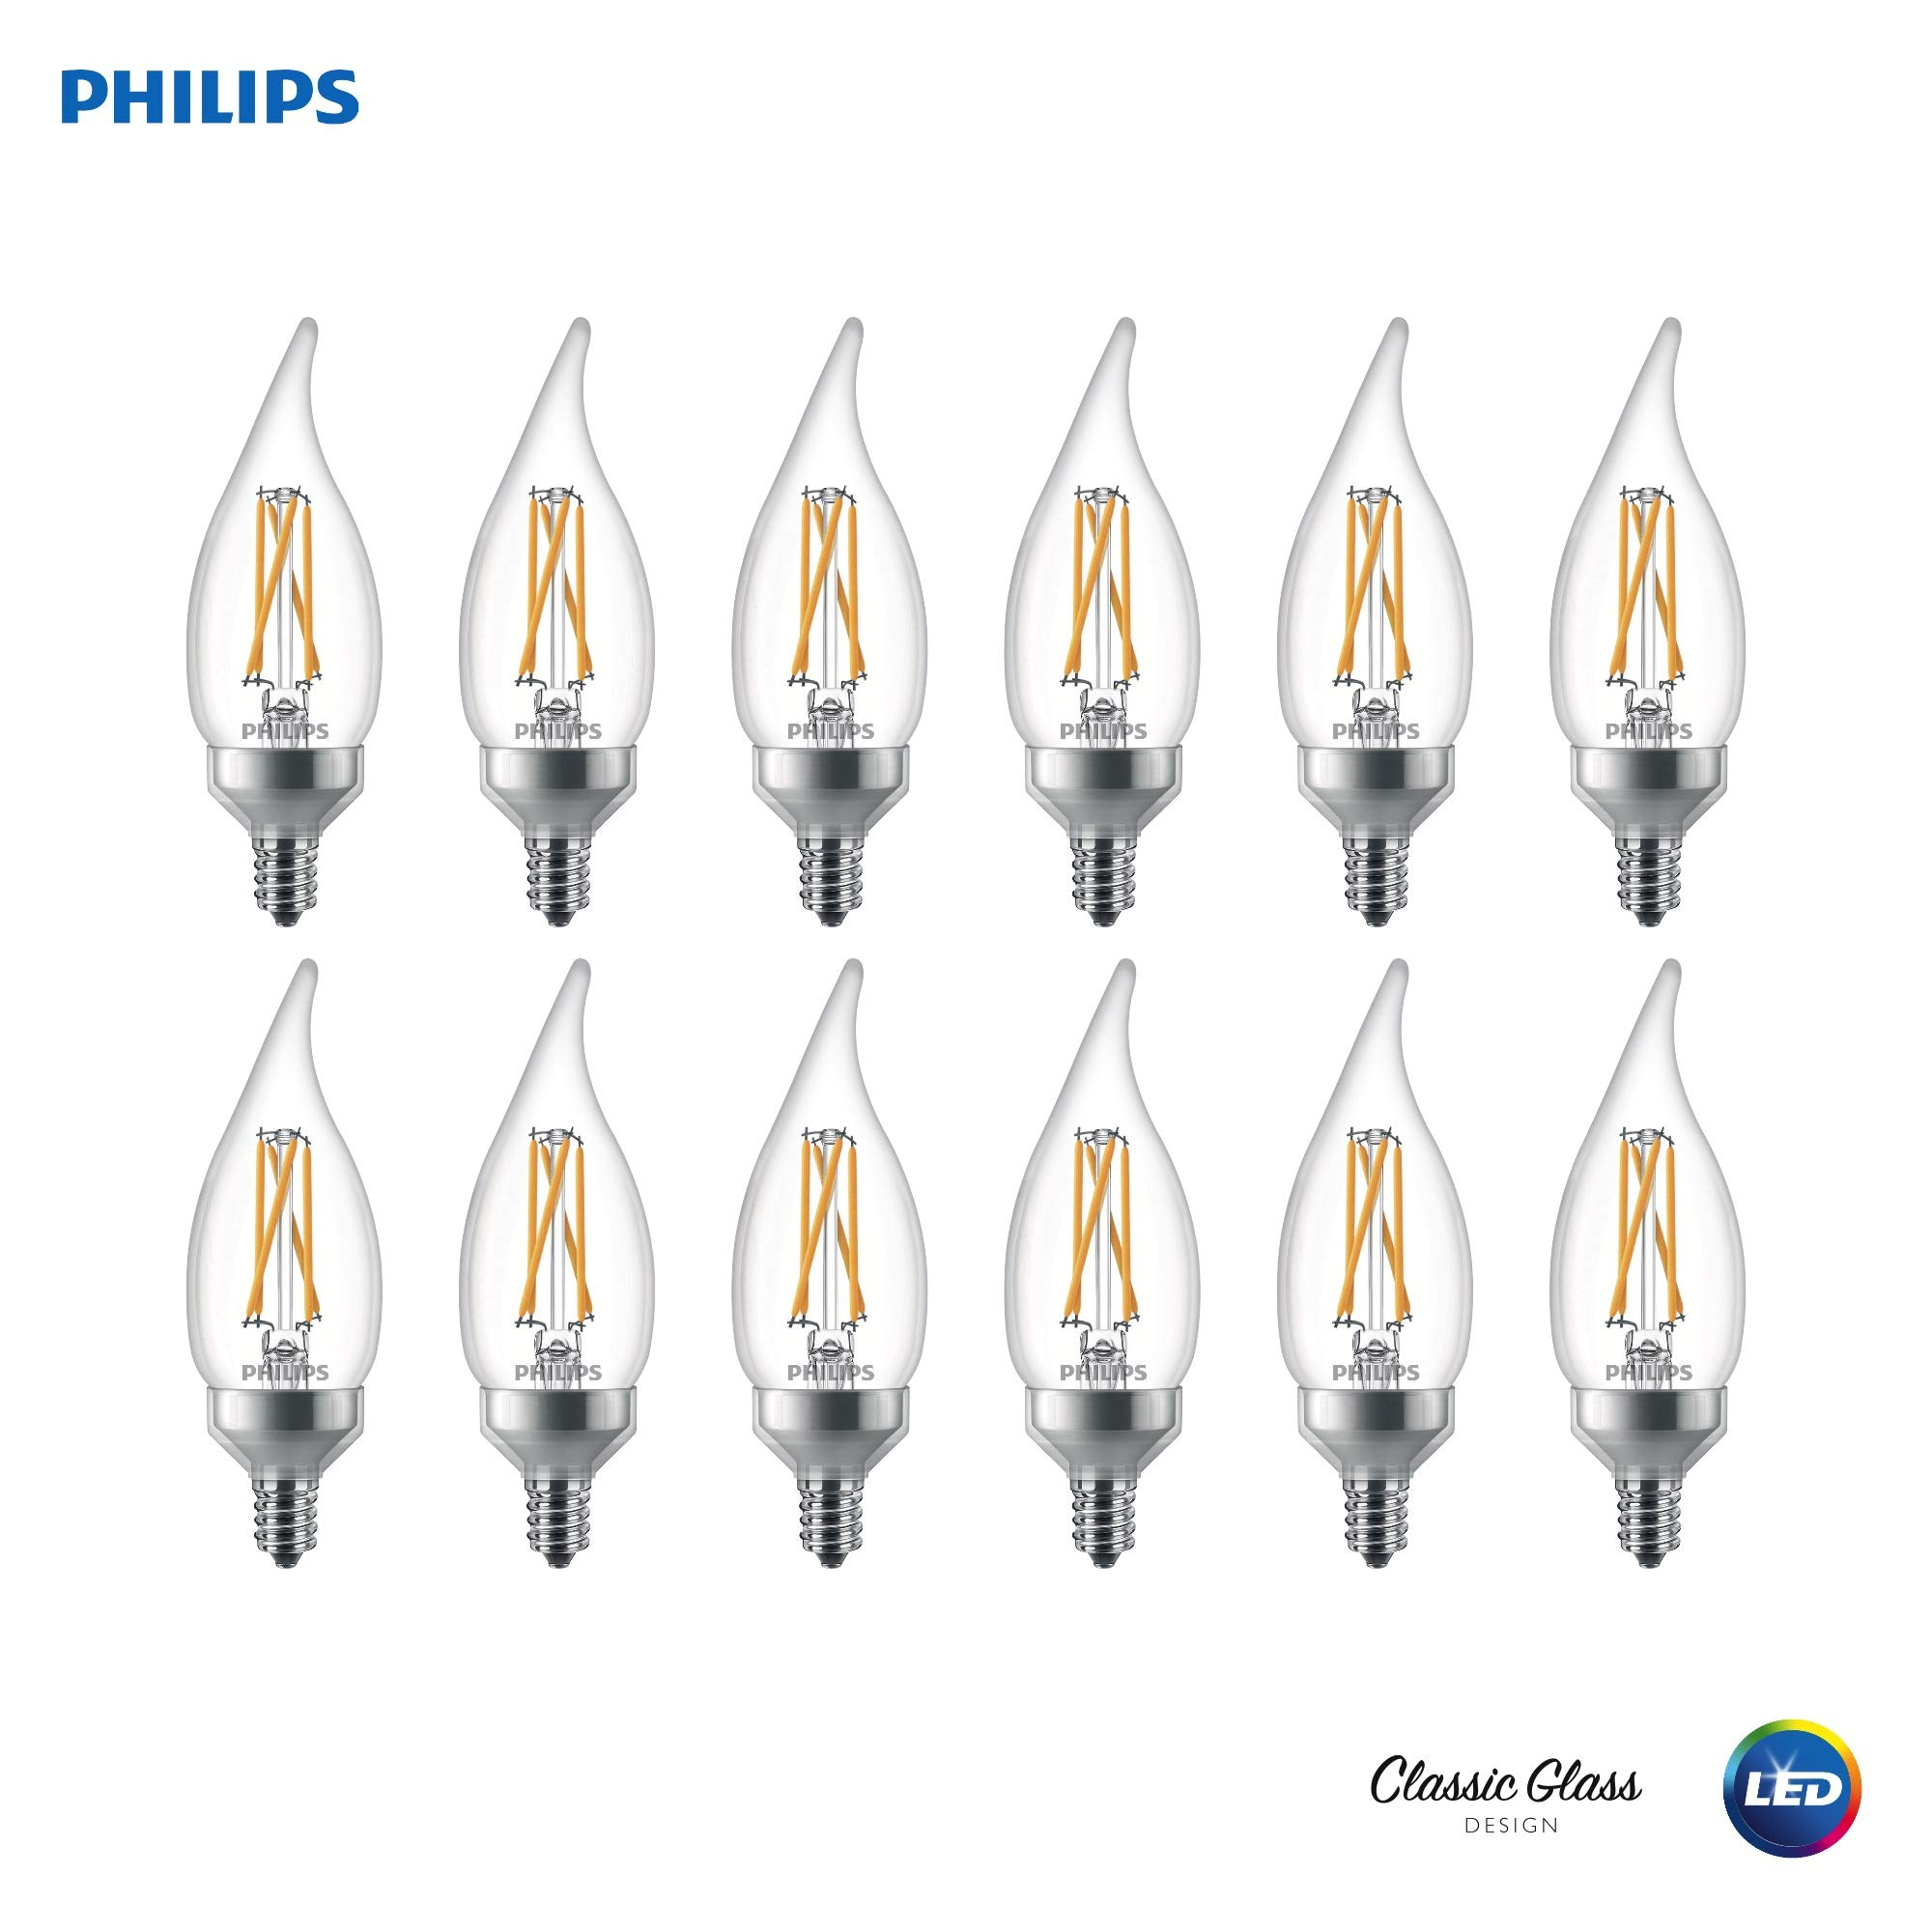 Philips 536680 LED Dimmable BA11 Clear X-Filament Glass Light Bulb with Warm Glow Effect: 500-Lumens, 2700-Kelvin, 5.5 (60-Watt Equivalent), Soft White E12 Candelabra Base, 12 Pack, Piece